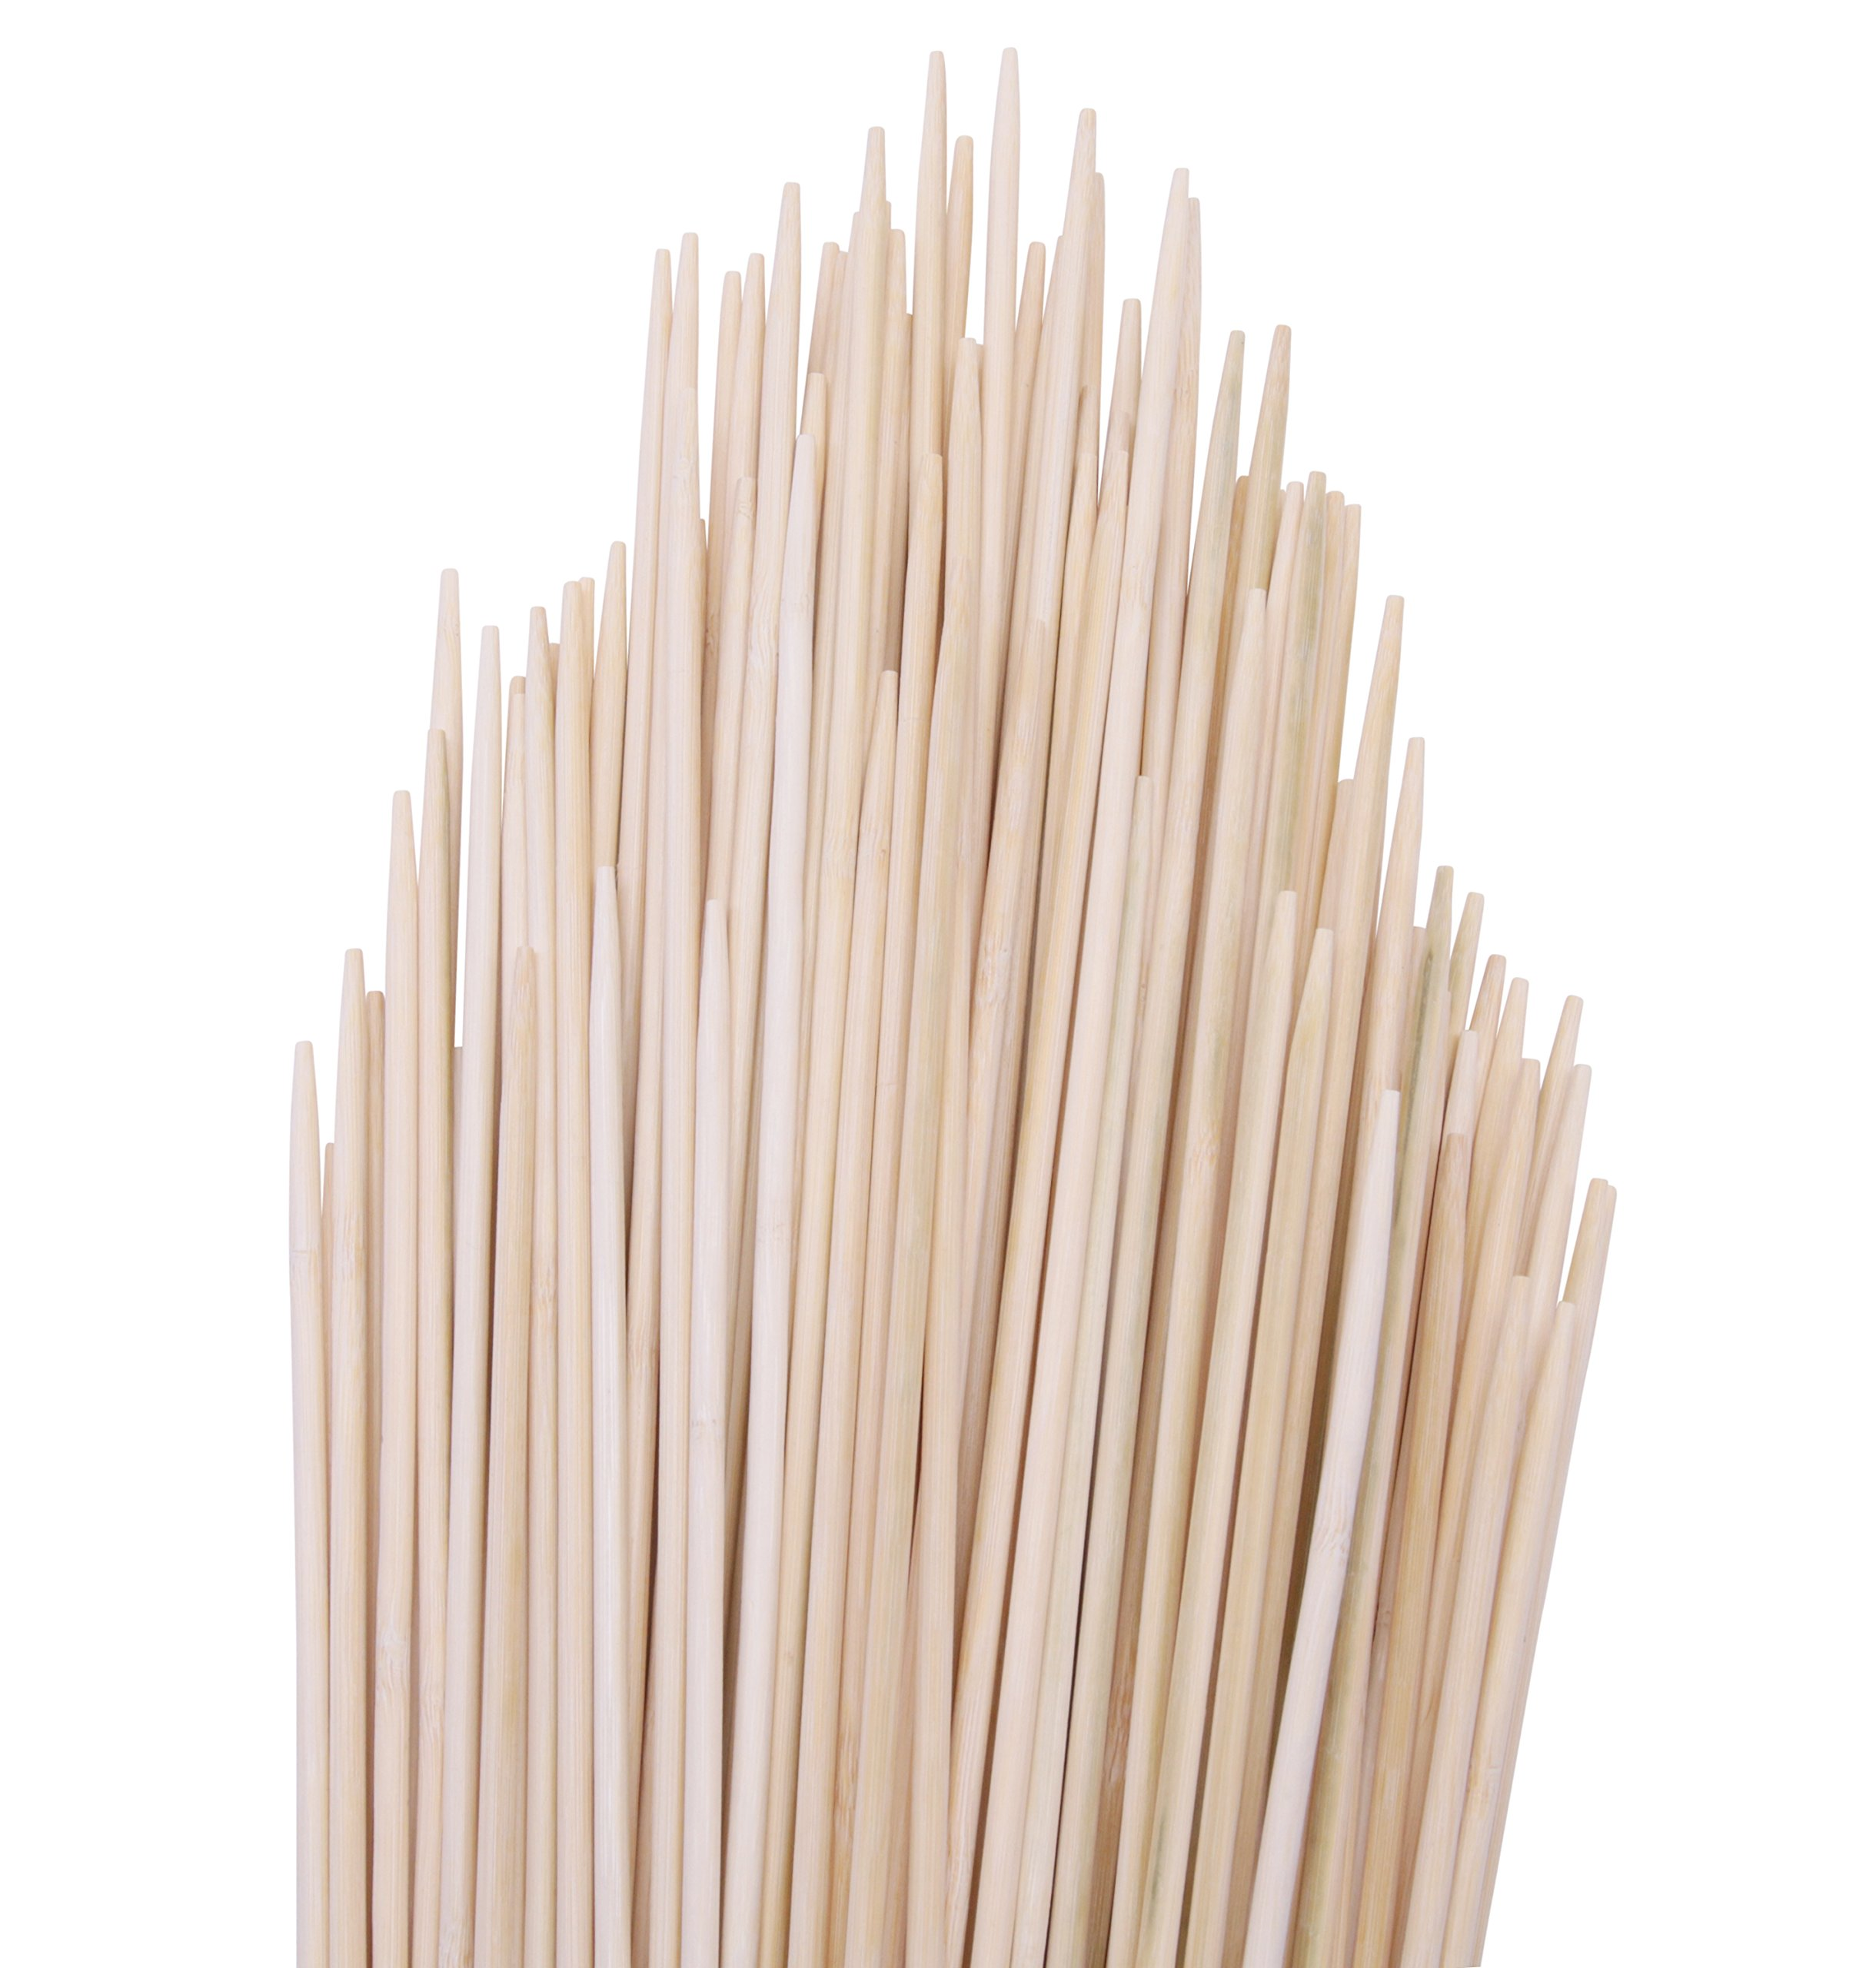 Wild Hearts Extra Long Natural Bamboo Marshmallow S'mores Roasting Sticks 36 inch x 5mm, 110 pack